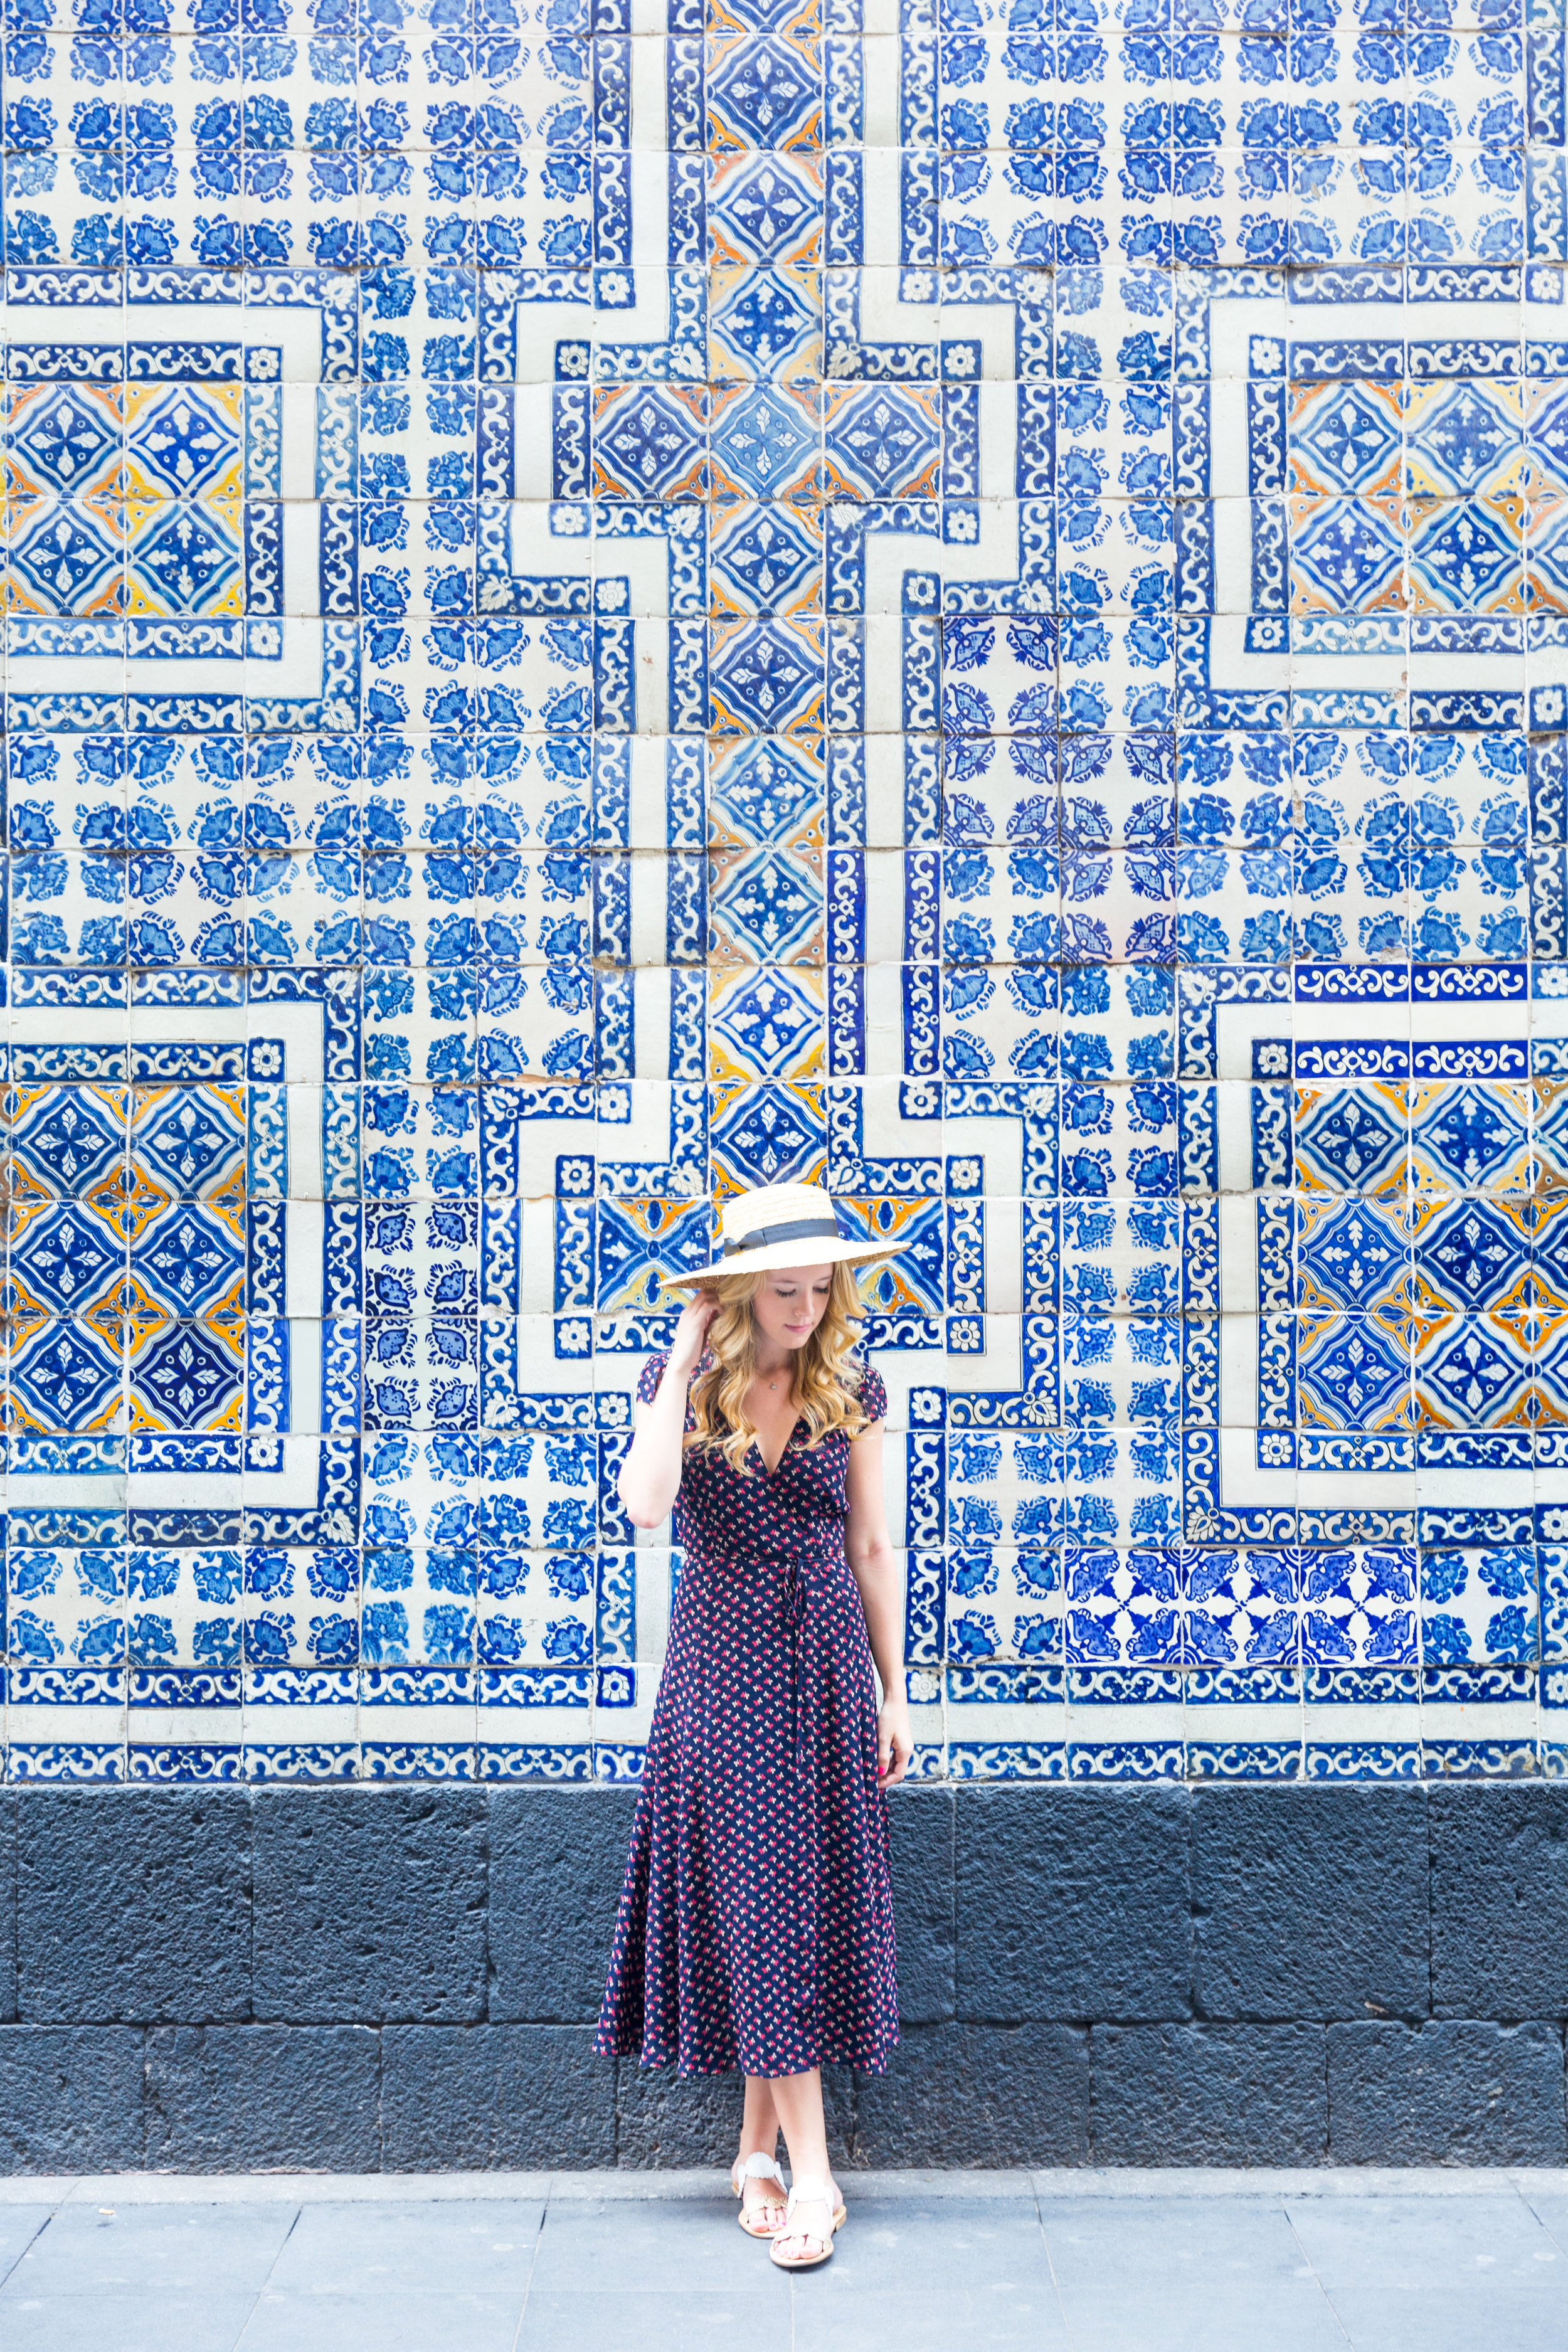 Mexico City Centro Historico Summer Outfit Pattern Wrap Dress_-2.jpg